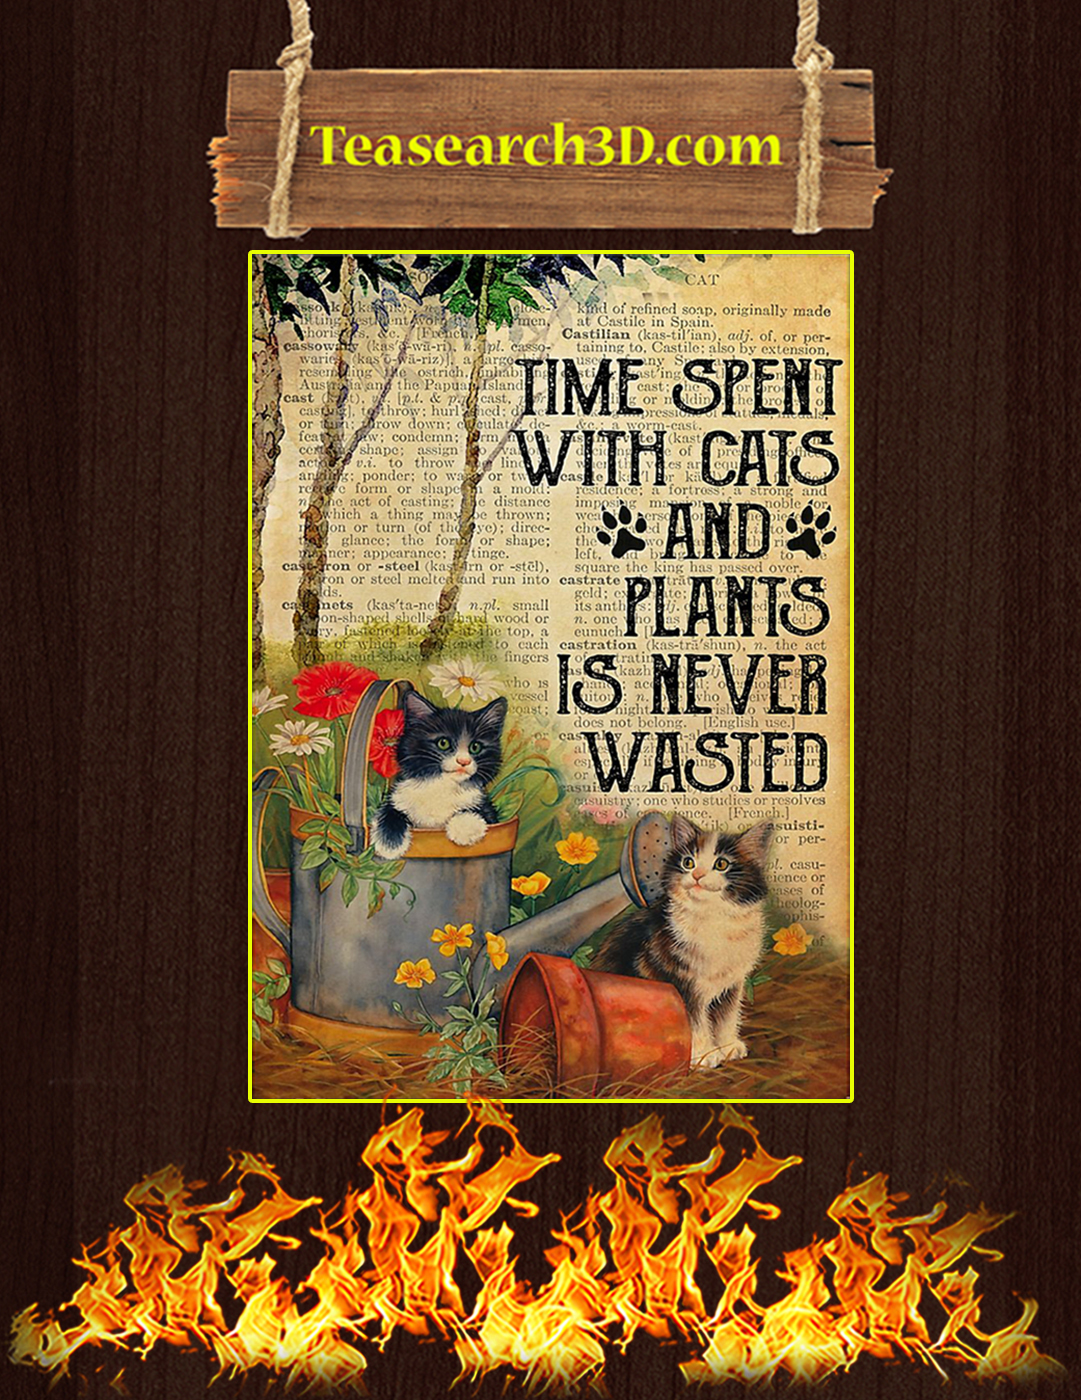 Time spent with cats and plants dictionary poster A2